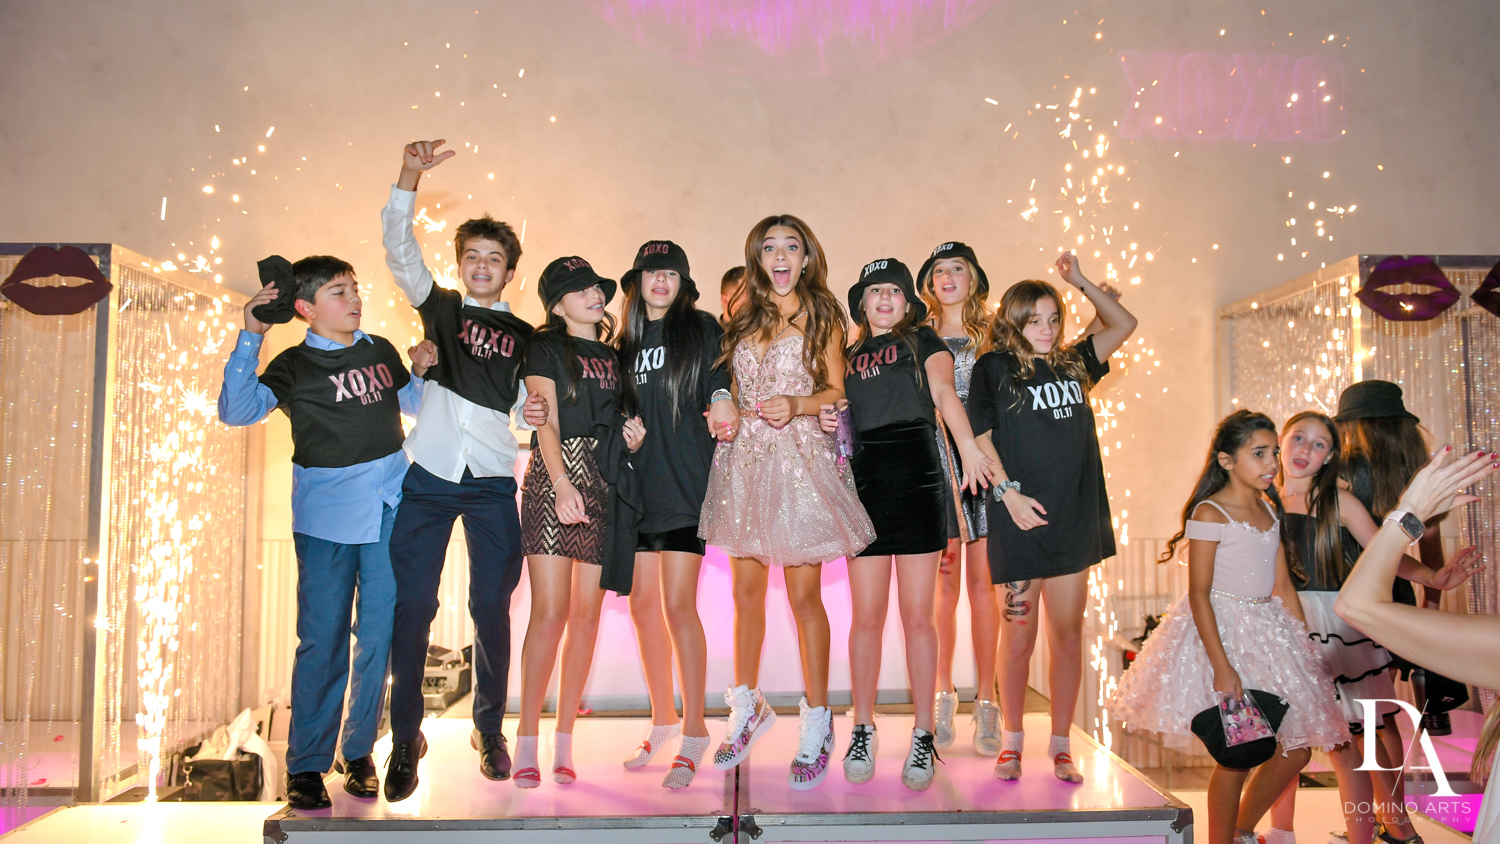 kids having fun at Pink XO Bat Mitzvah at The Venue Crystal Ballroom by Domino Arts Photography